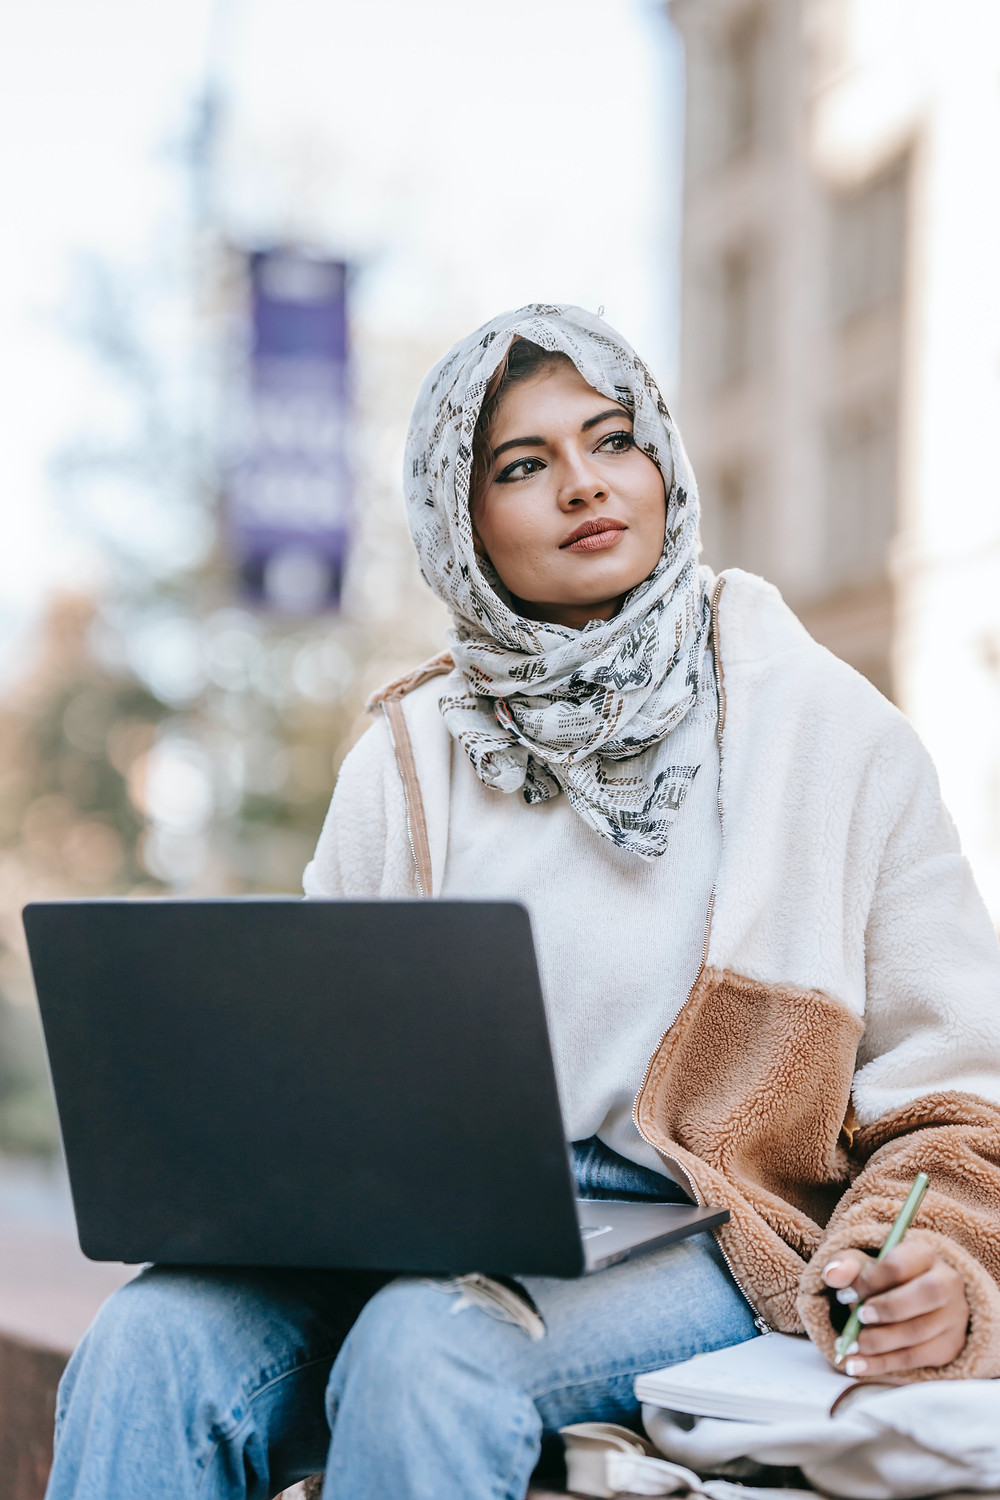 A hijab wearing woman sitting outside and working on her laptop